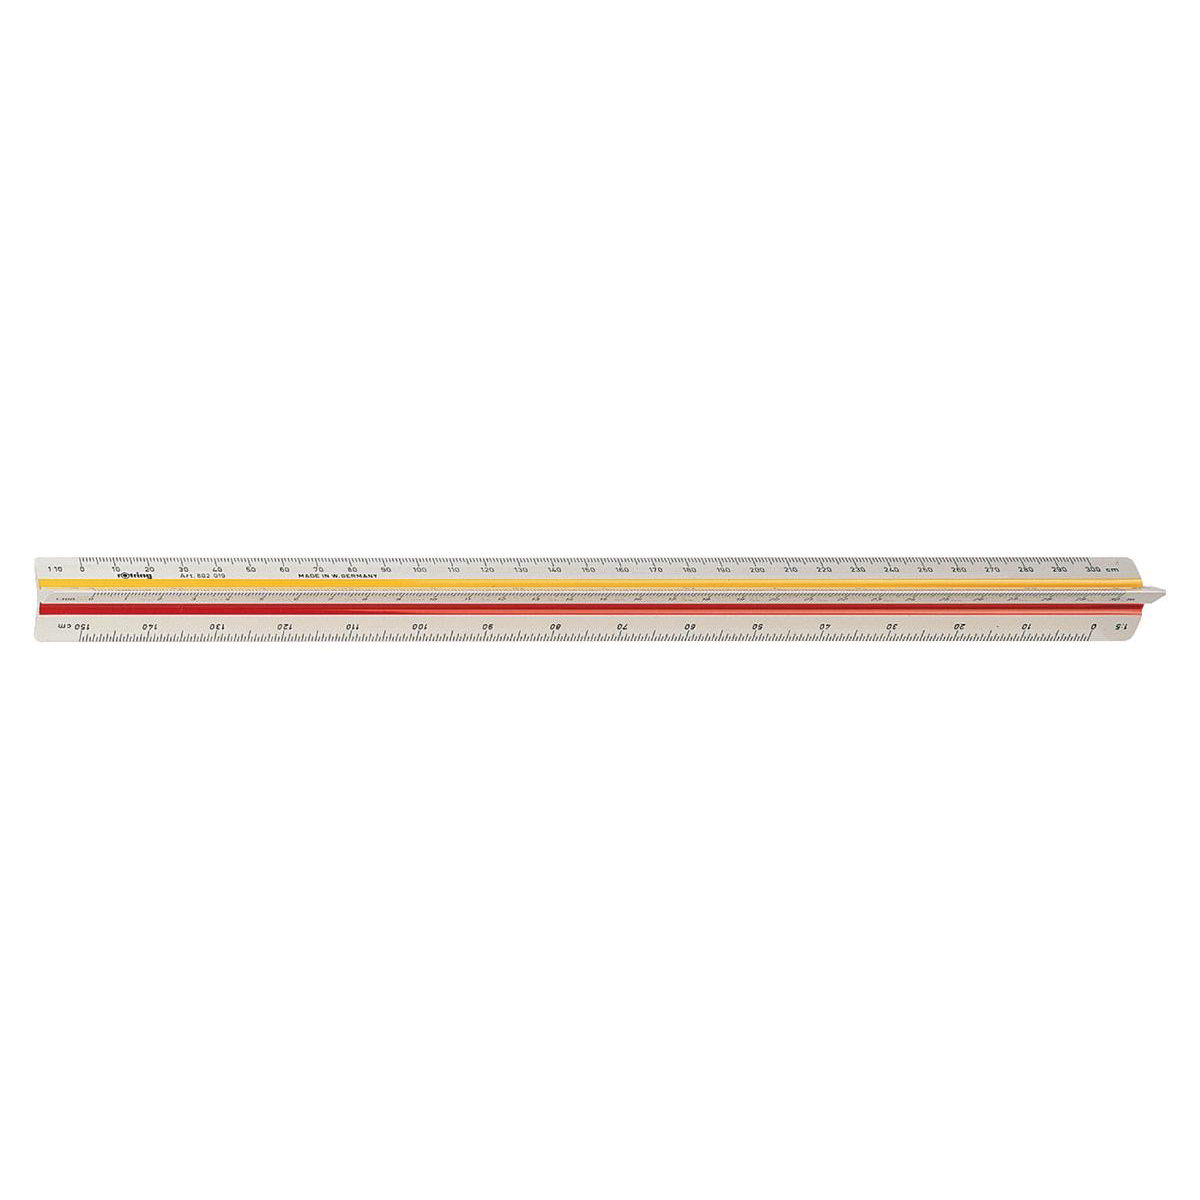 Image for Rotring Ruler Triangular Reduction Scale 4 Architect 1:10 to 1:500 with 2 Coloured Flutings Ref S0220641